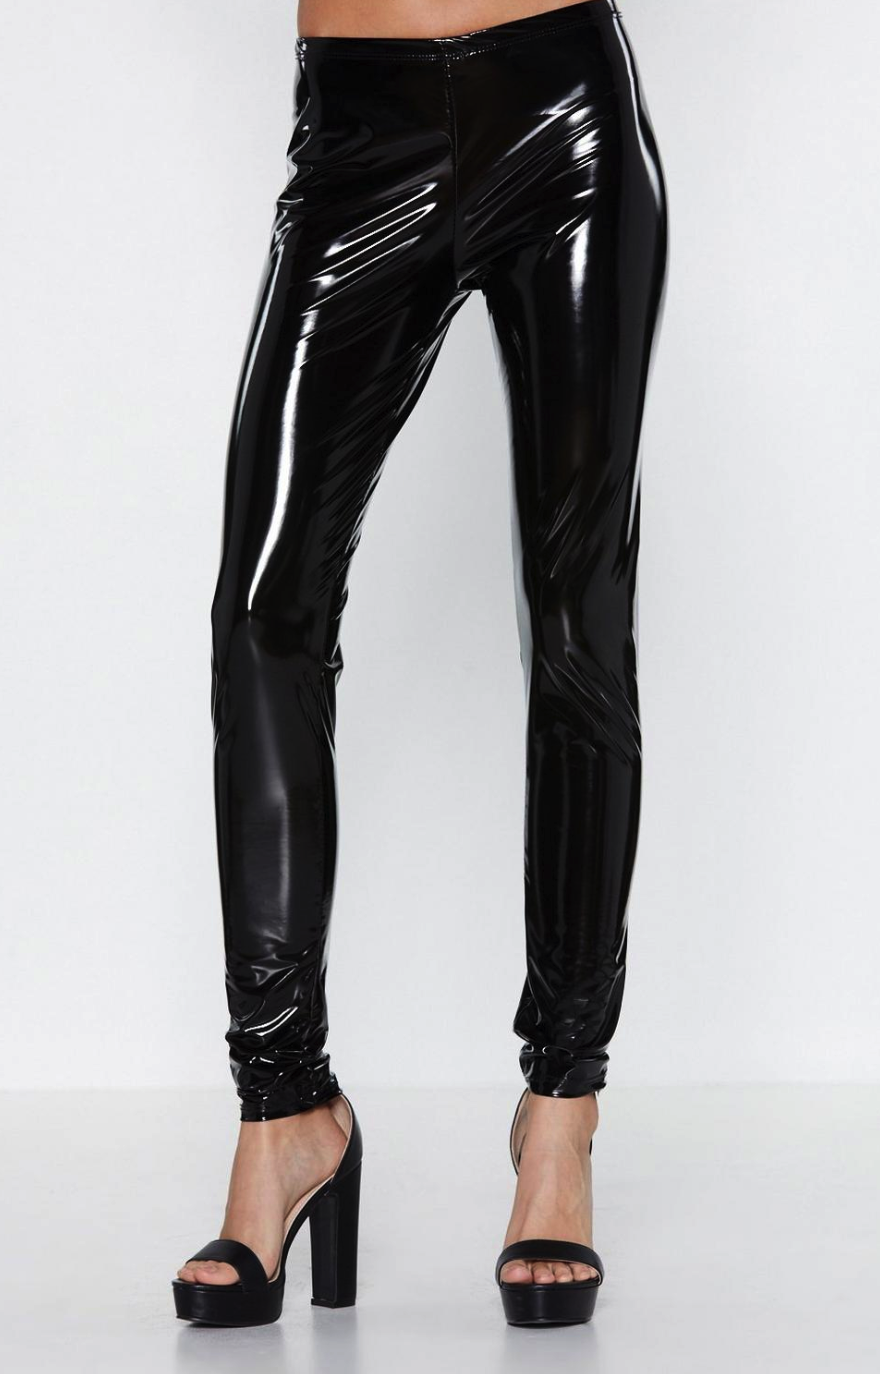 Nasty Gal - $10.00 (On Sale)